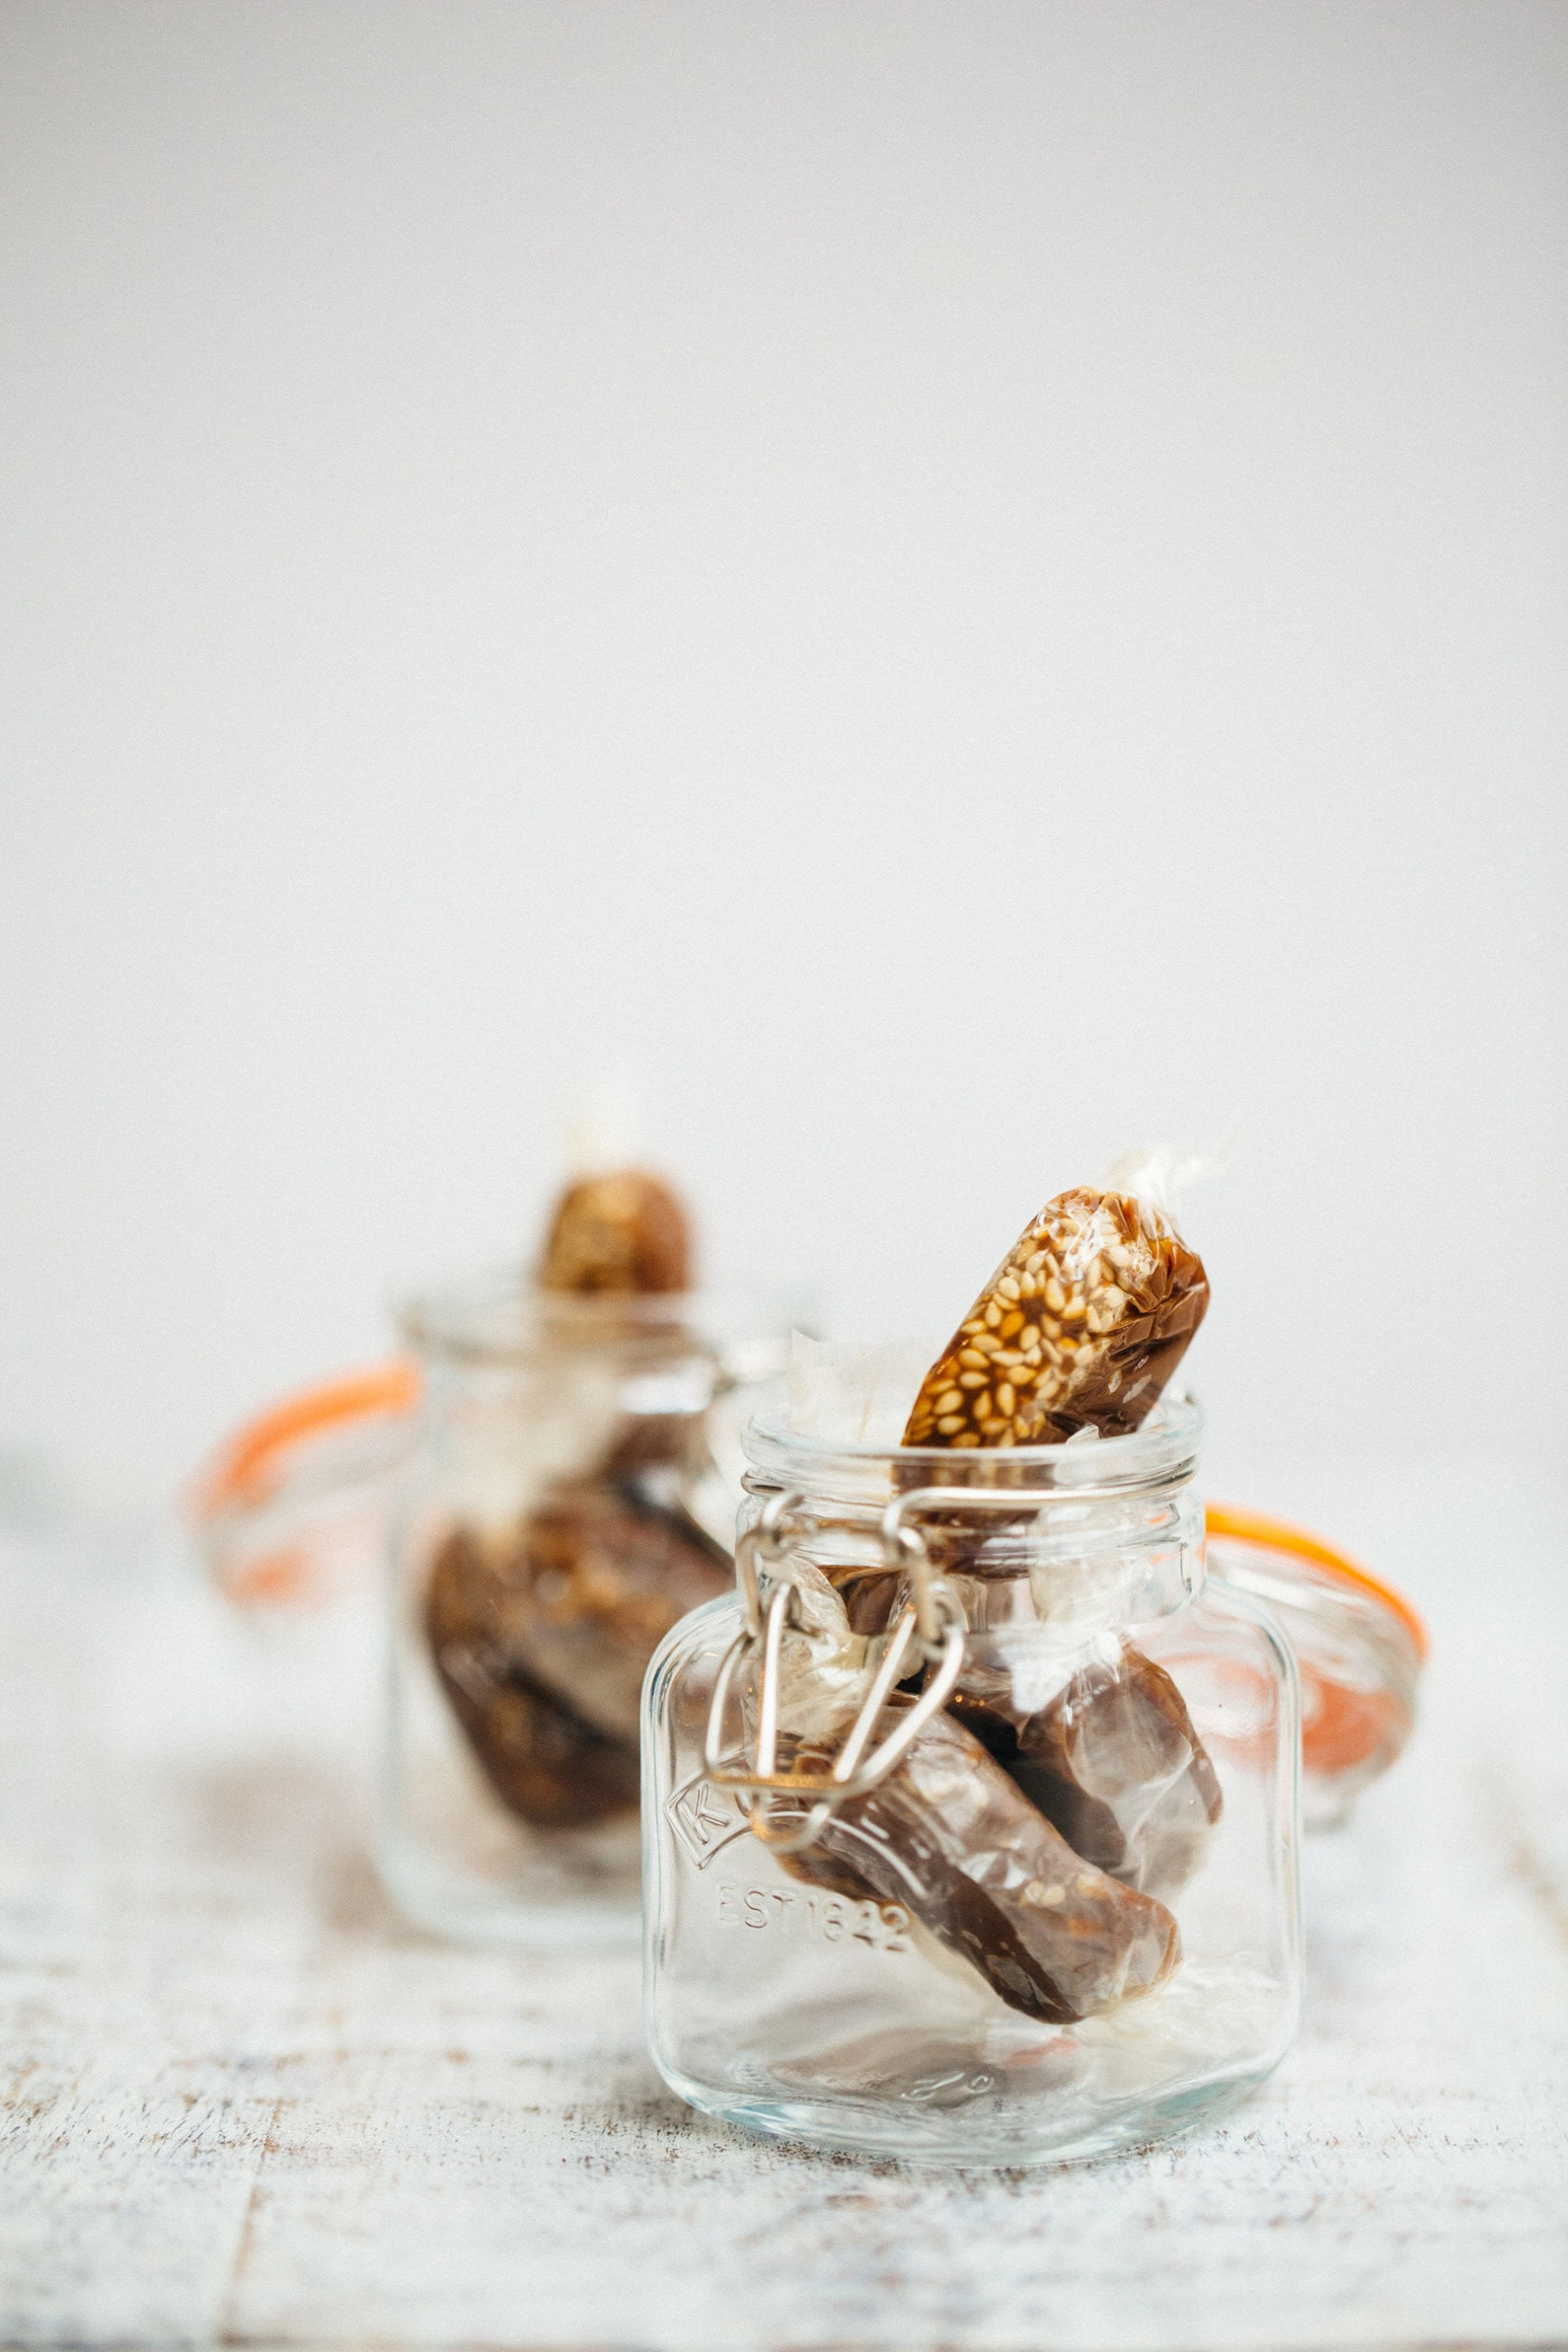 Sesame treats in jars